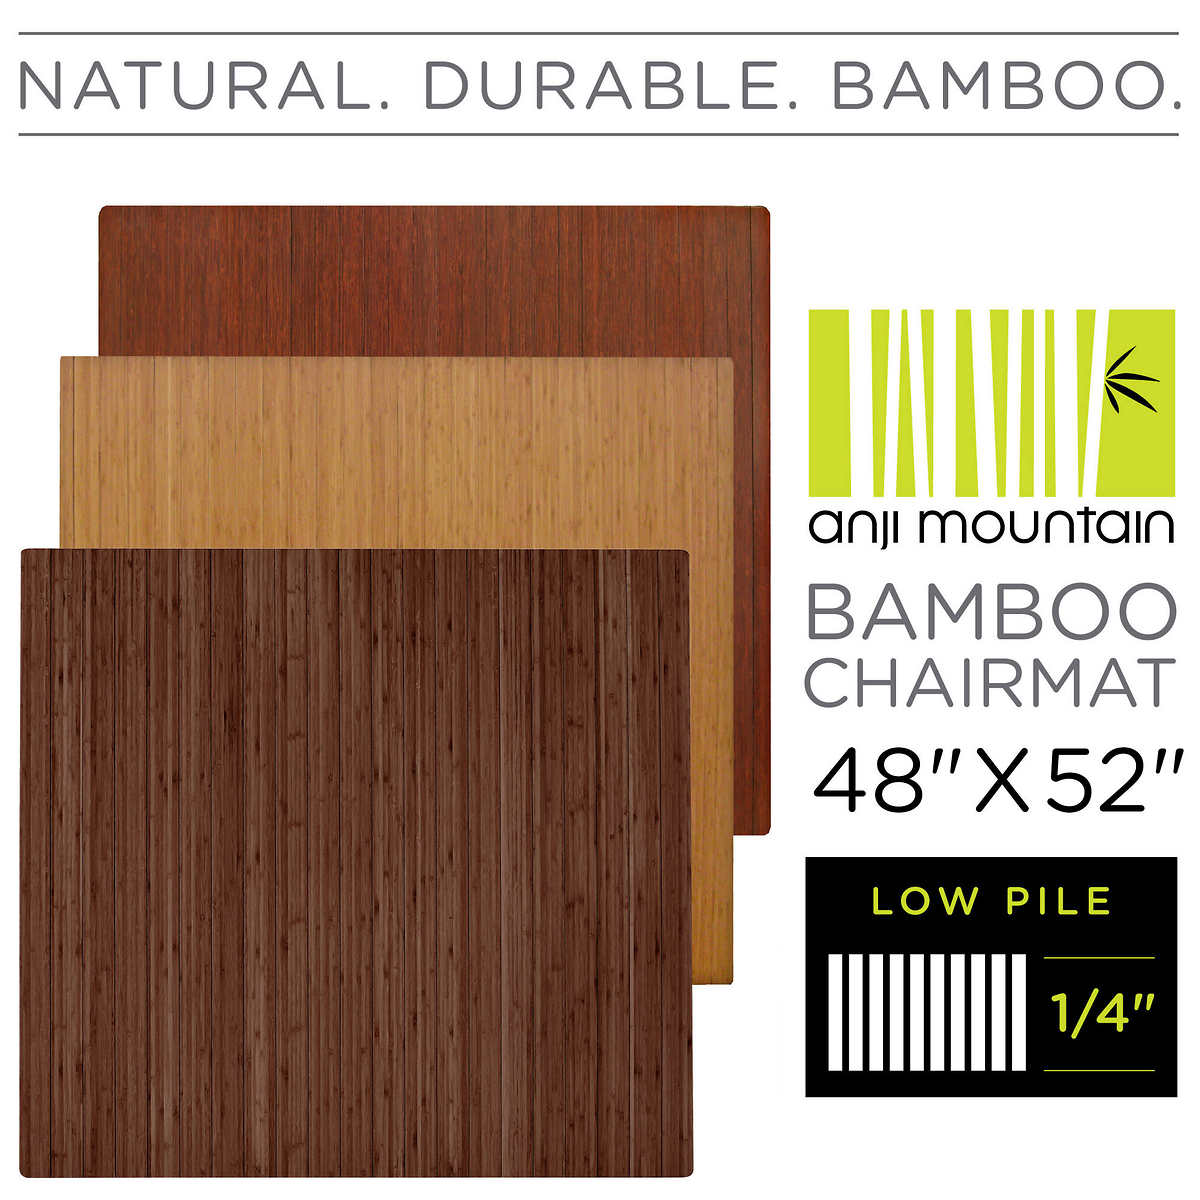 Hardwood Floor Chair Mat large size of flooringchair mat for hardwood floor amazon com anji mountain amb24008 bamboo Anji Mountain Bamboo Chair Mat Low Pilehard Floors 48 X 52